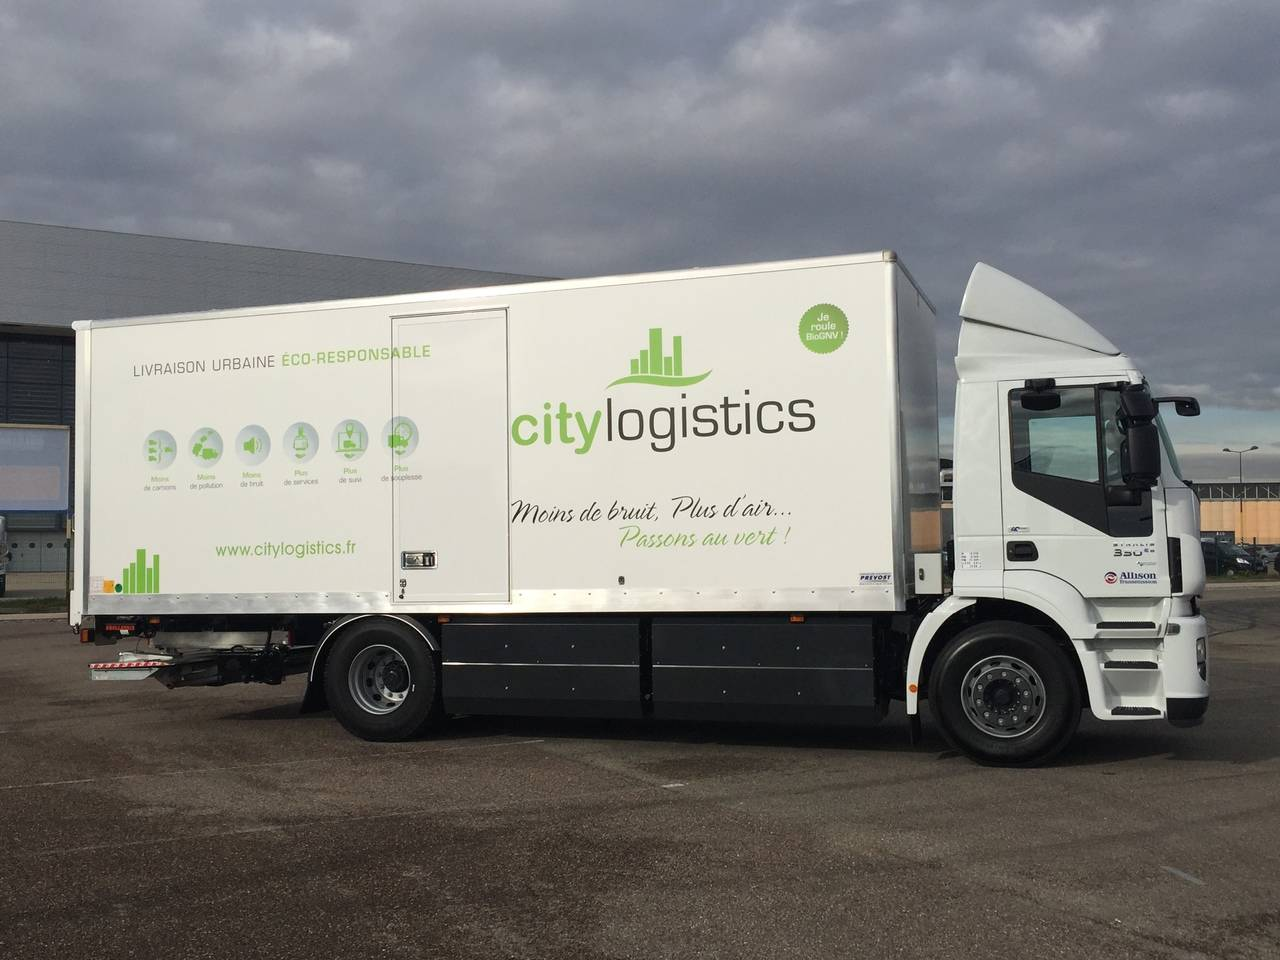 City Logistics idea distribución urbana con camiones de gas